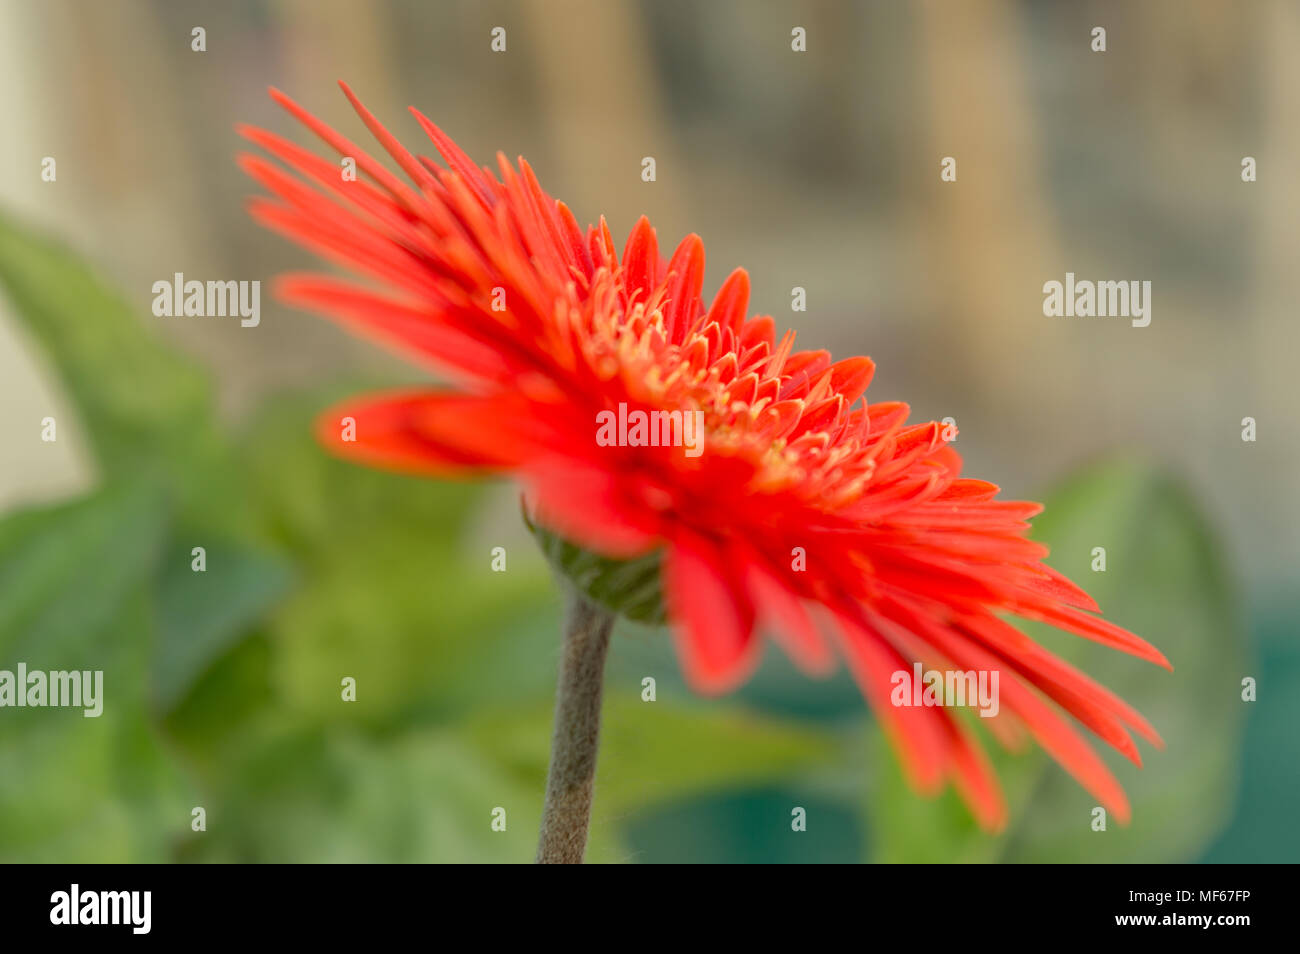 A beautiful orange isolated Gerbera flower. It is a genus of plants in the Asteraceae (daisy family) and named in honour of German botanist Traugott G - Stock Image